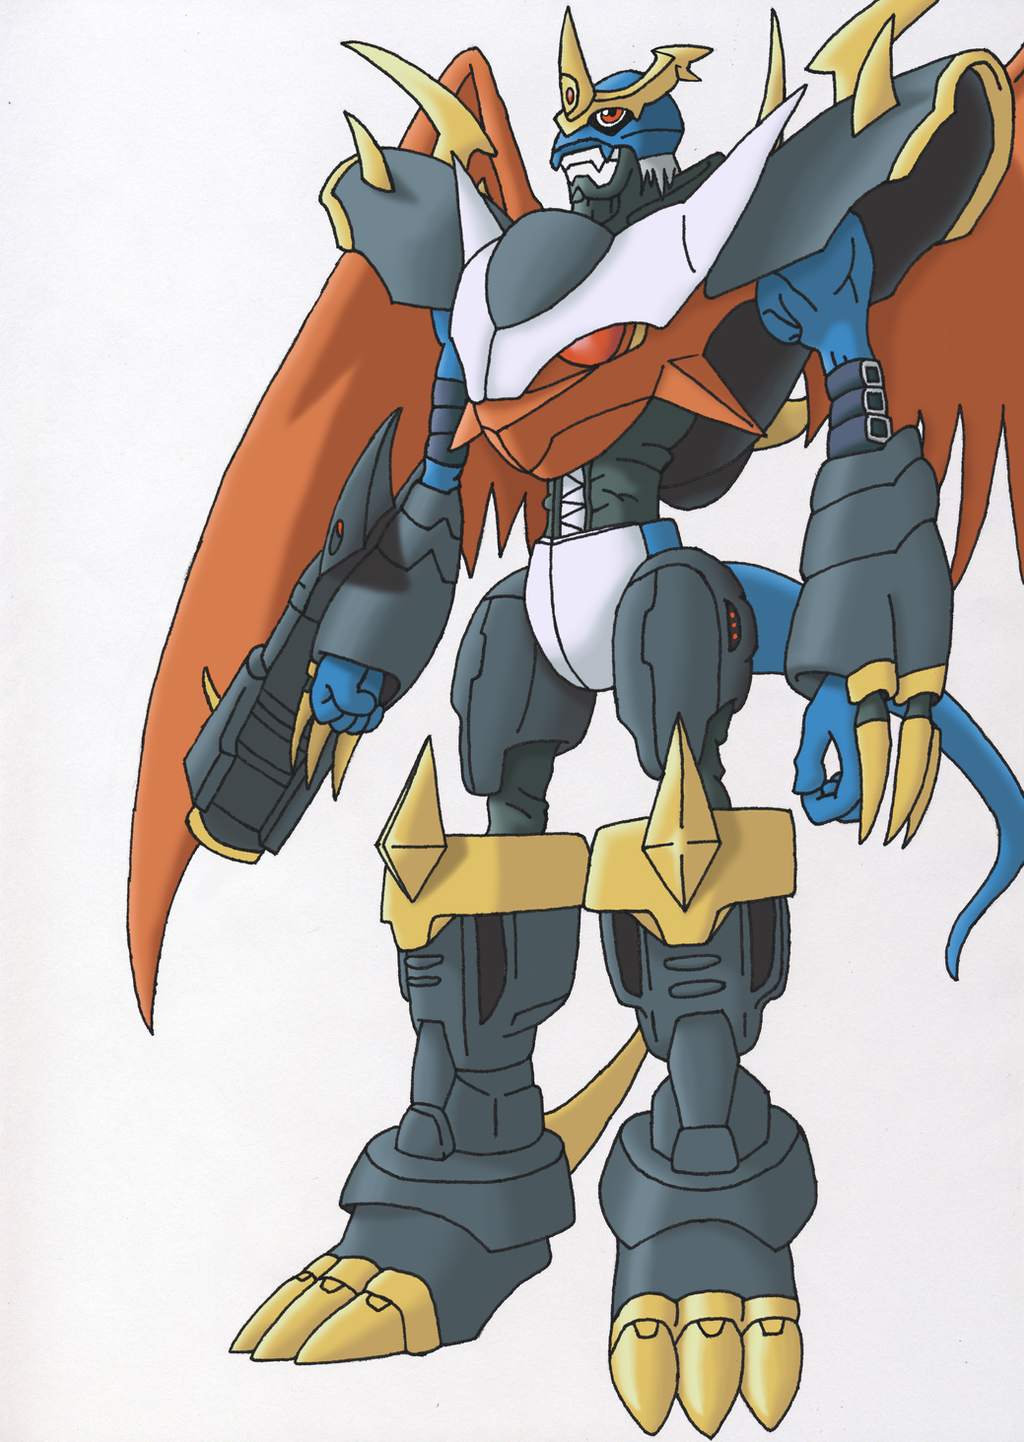 Imperialdramon - Fighter Mode by Siques on DeviantArt